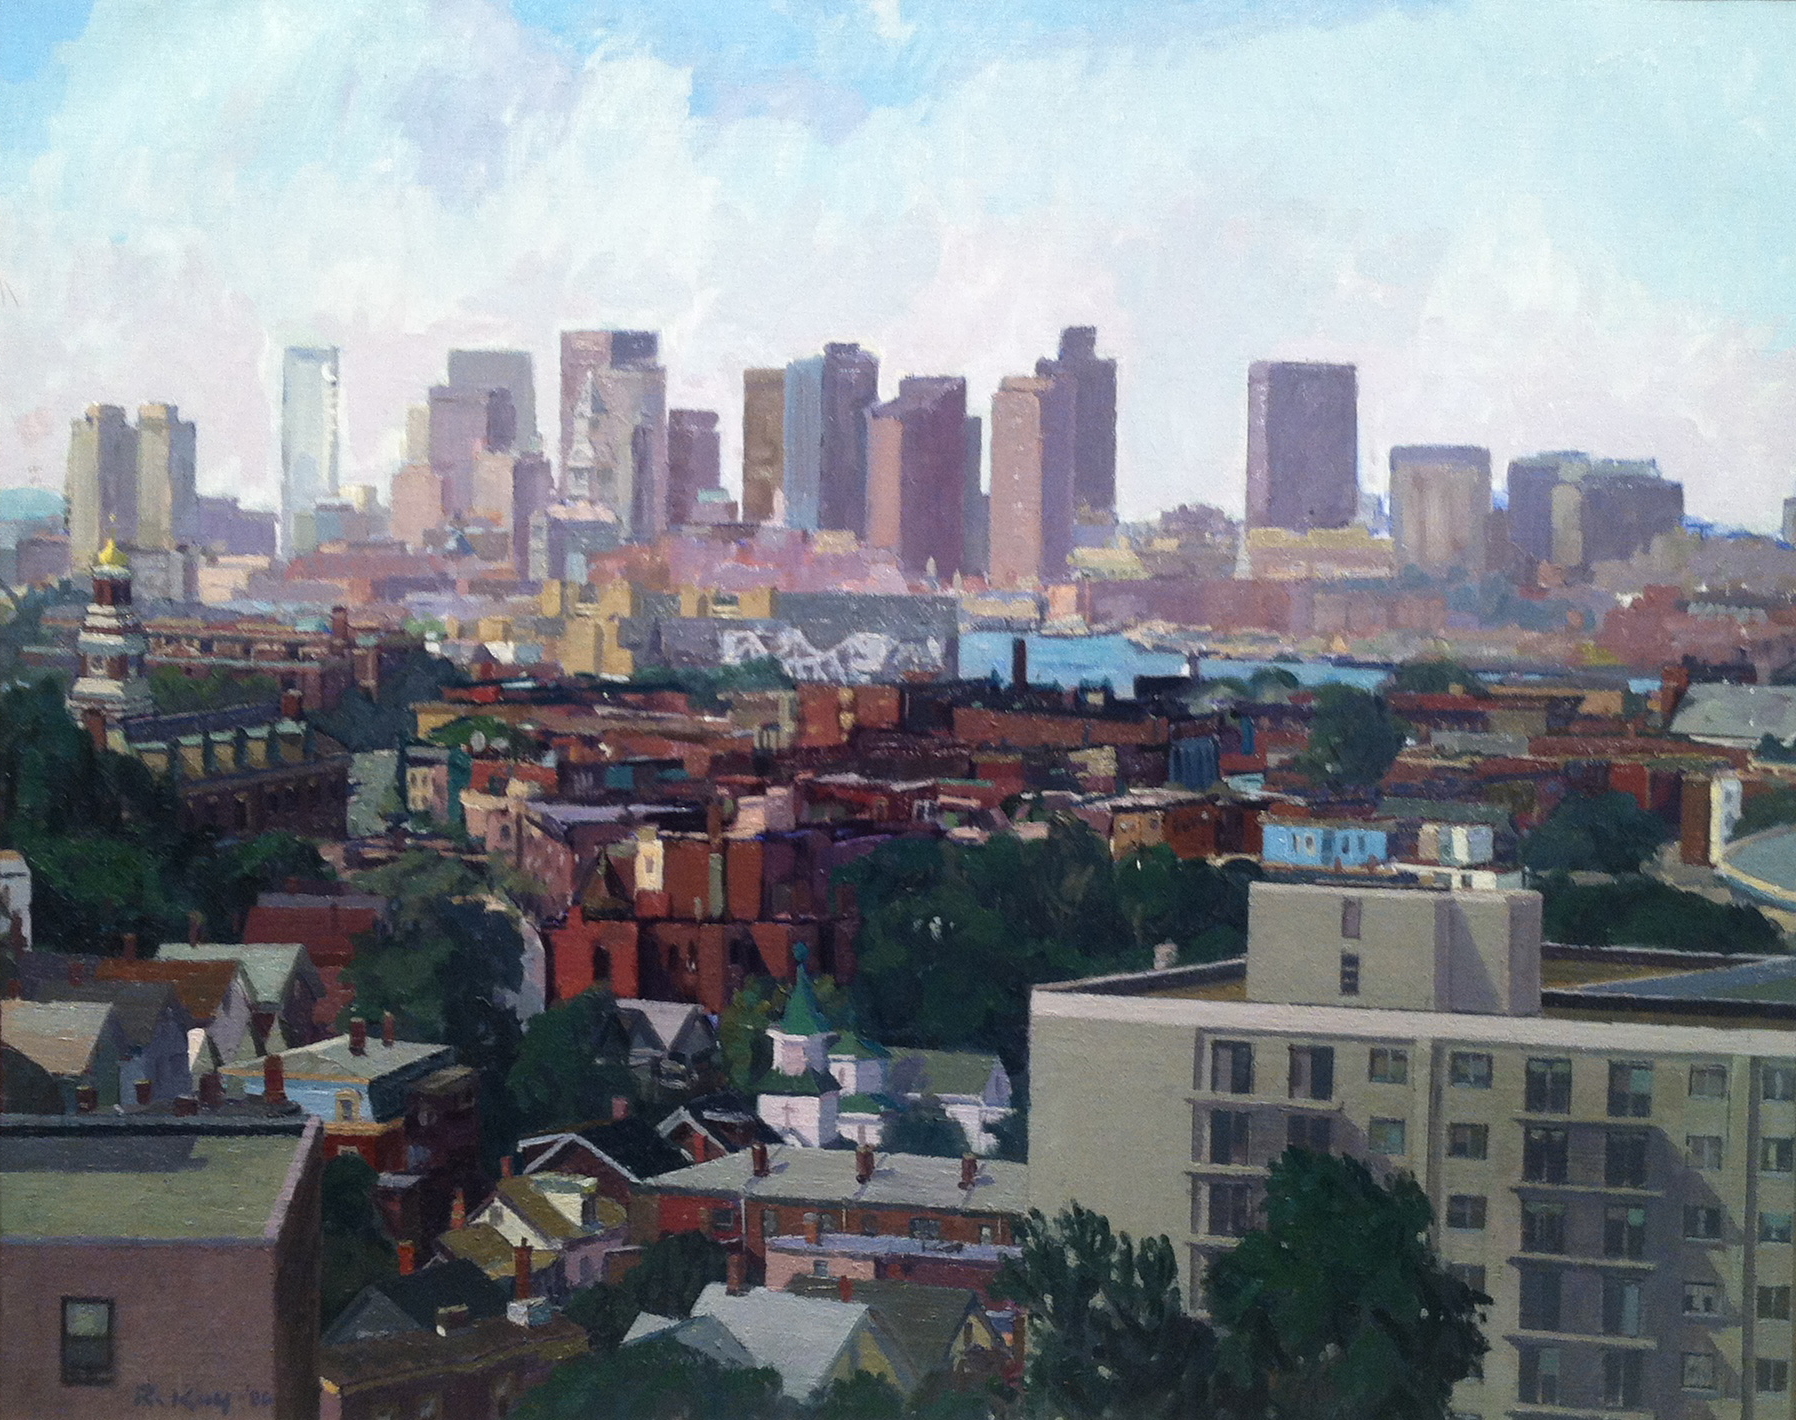 Chelsea View, 1986 oil on canvas, 24 x 30 inches